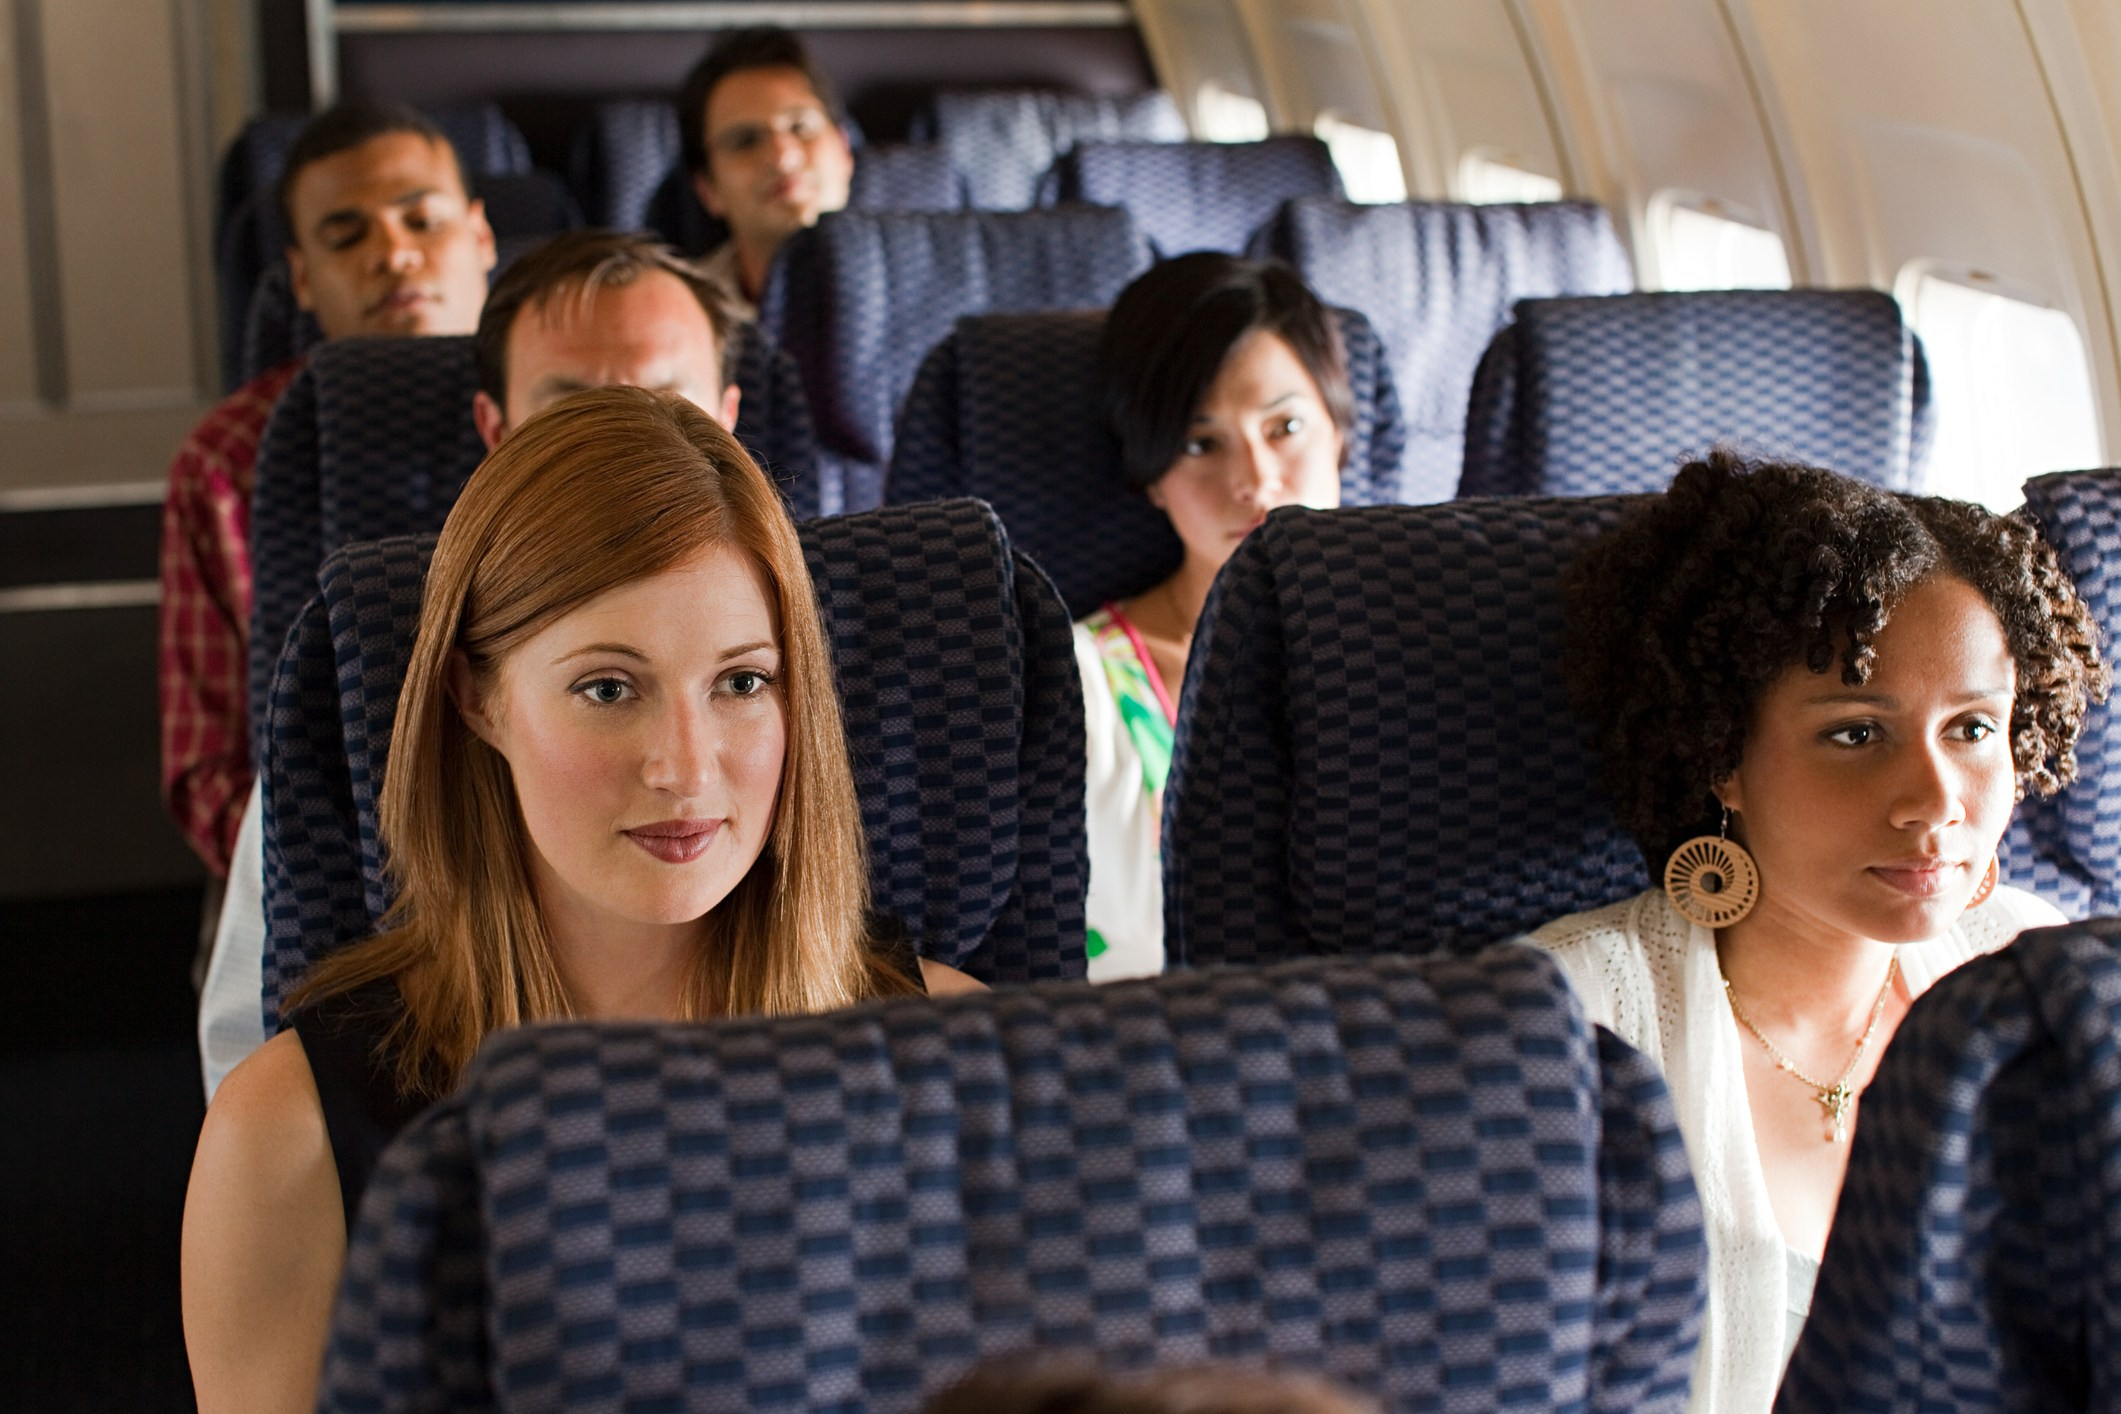 passengers sitting on an airplane